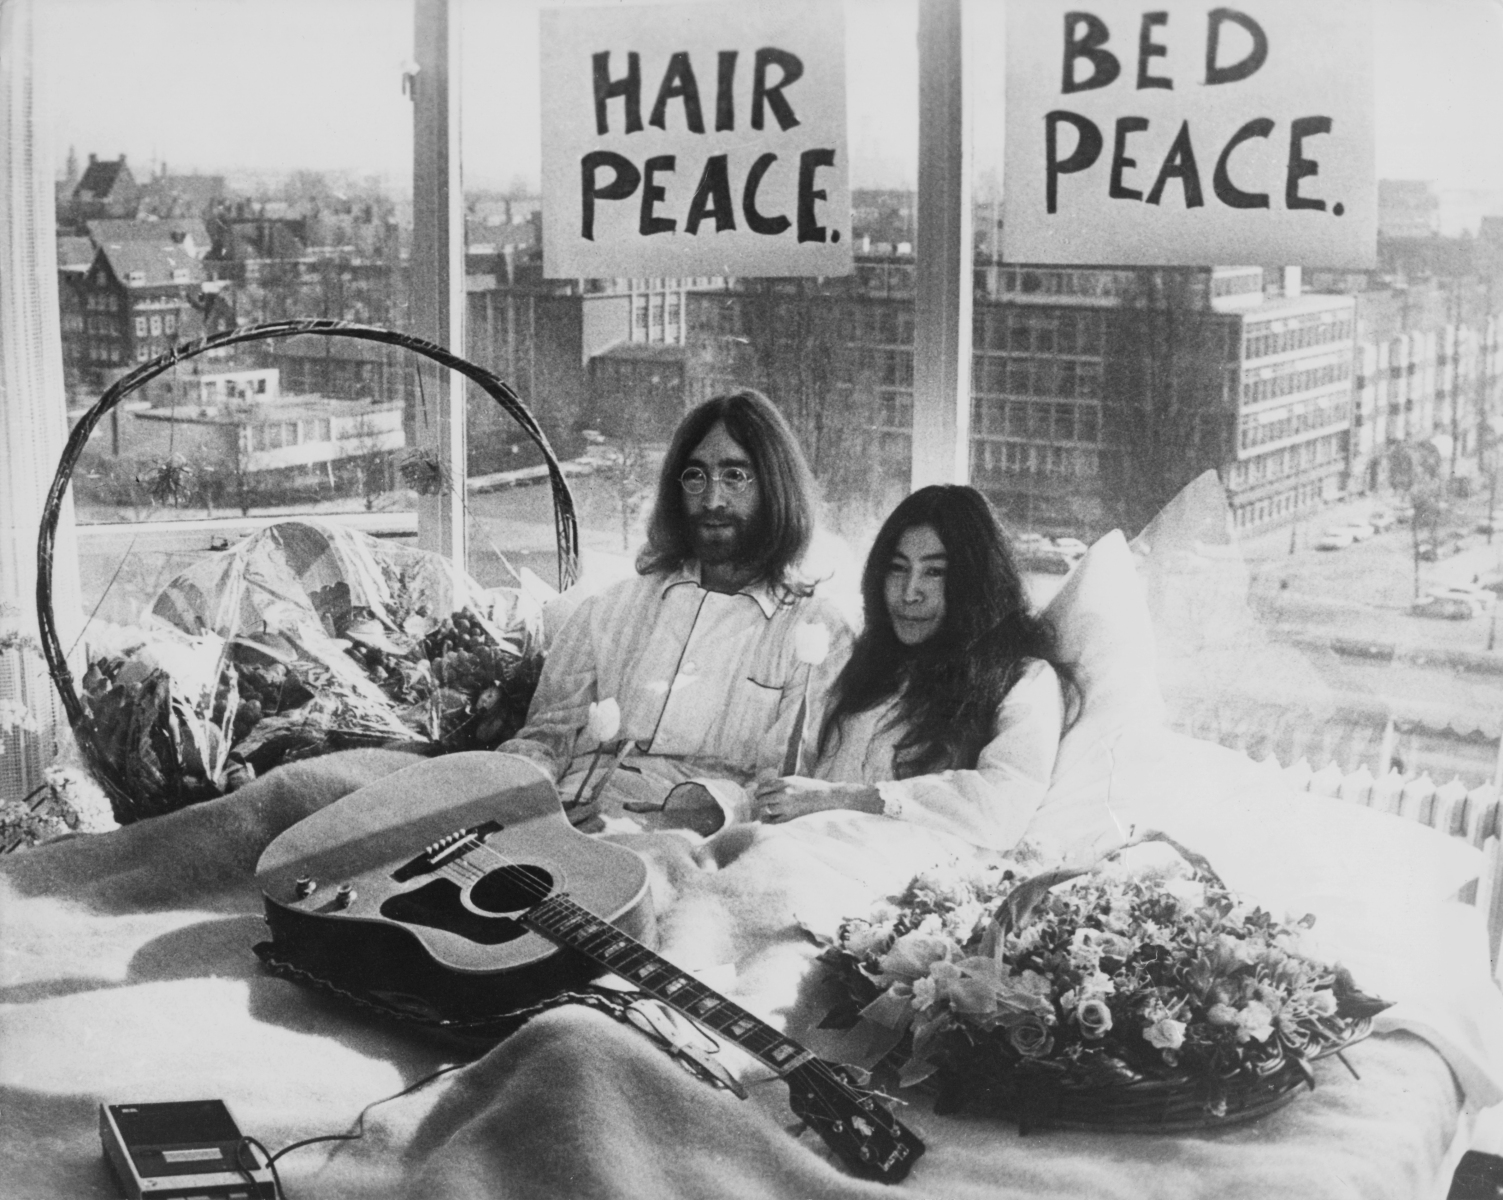 Revisiting John Lennon and Yoko Ono's Bed-In 50 Years Later - InsideHook